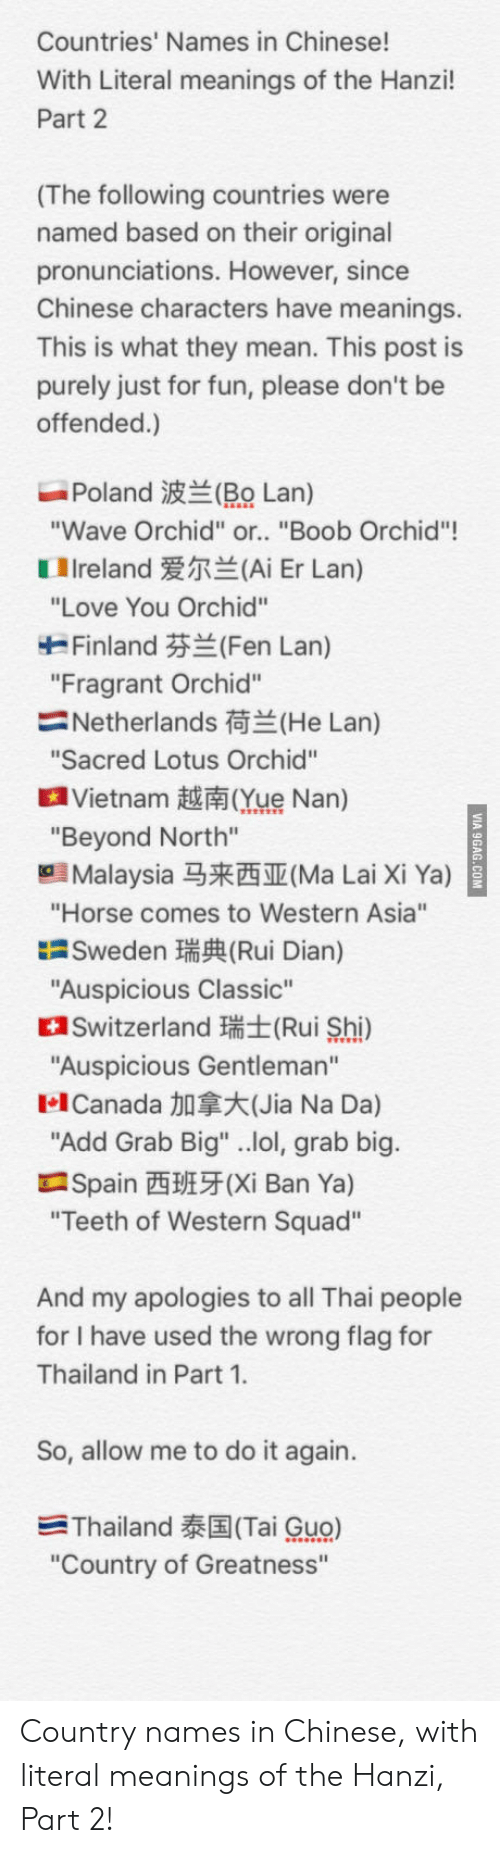 "Do It Again, Lol, and Love: Countries' Names in Chinese!  With Literal meanings of the Hanzi!  Part 2  (The following countries were  named based on their original  pronunciations. However, since  Chinese characters have meanings.  This is what they mean. This post is  purely just for fun, please don't be  offended.)  Poland波兰(RO Lan)  Wave Orchid"" or.. ""Boob Orchid""!  1 Ireland爱尔兰(Ai Er Lan)  ""Love You Orchid""  Finland芬兰(Fen Lan)  ""Fragrant Orchid""  Netherlands荷兰(He Lan)  Sacred Lotus Orchid""  a Vietnam越南Que Nan)  ""Beyond North""  Malaysia马来西亚(Ma Lai Xi Ya)  ""Horse comes to Western Asia""  Sweden瑞興Rui Dian)  ""Auspicious Classic""  Switzerland (Rui Shi)  Auspicious Gentleman""  1.1 Canada加拿大(Jia Na Da)  Add Grab Big"" ..lol, grab big  Spain西班牙(Xi Ban Ya)  Teeth of Western Squad""  And my apologies to all Thai people  for I have used the wrong flag for  Thailand in Part 1  So, allow me to do it again.  -Thailand泰国(Tai Guo)  ""Country of Greatness"" Country names in Chinese, with literal meanings of the Hanzi, Part 2!"